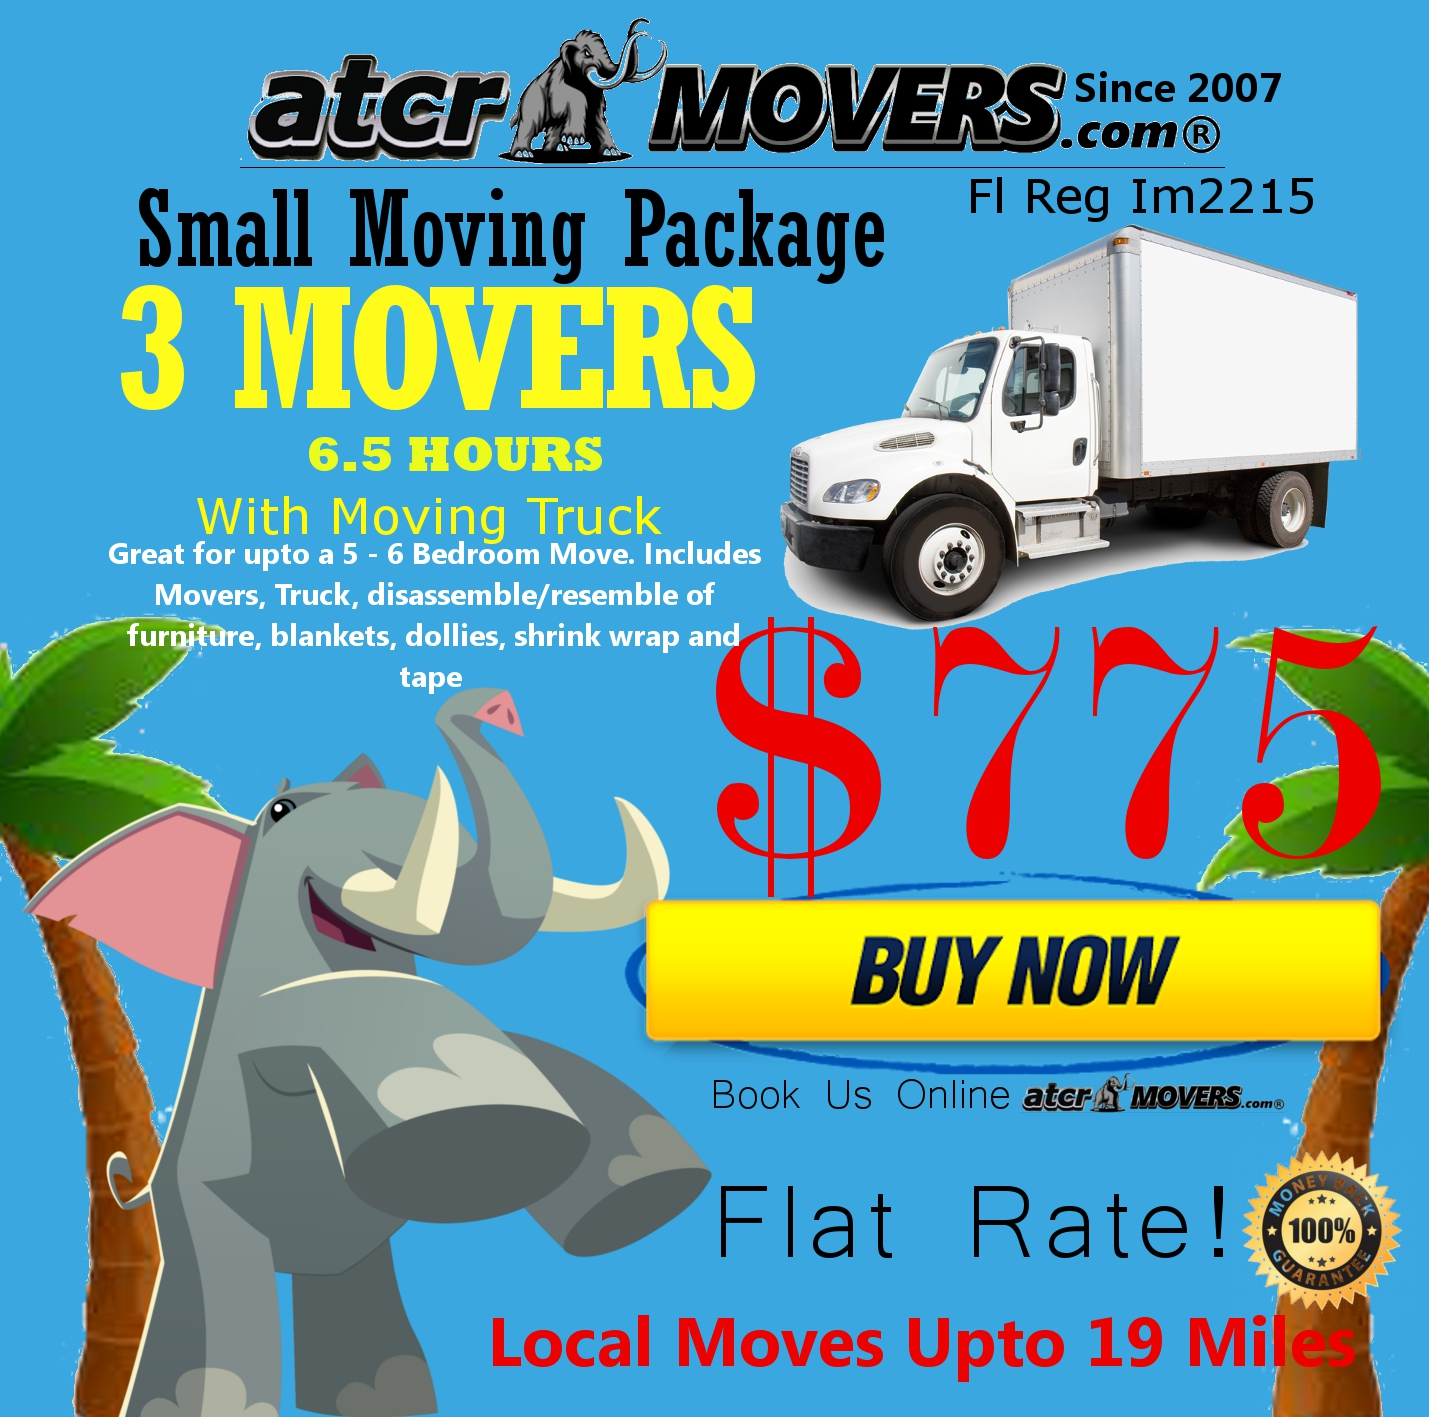 ATCR MOVERS 3 MOVERS 6.5 HOURS $775